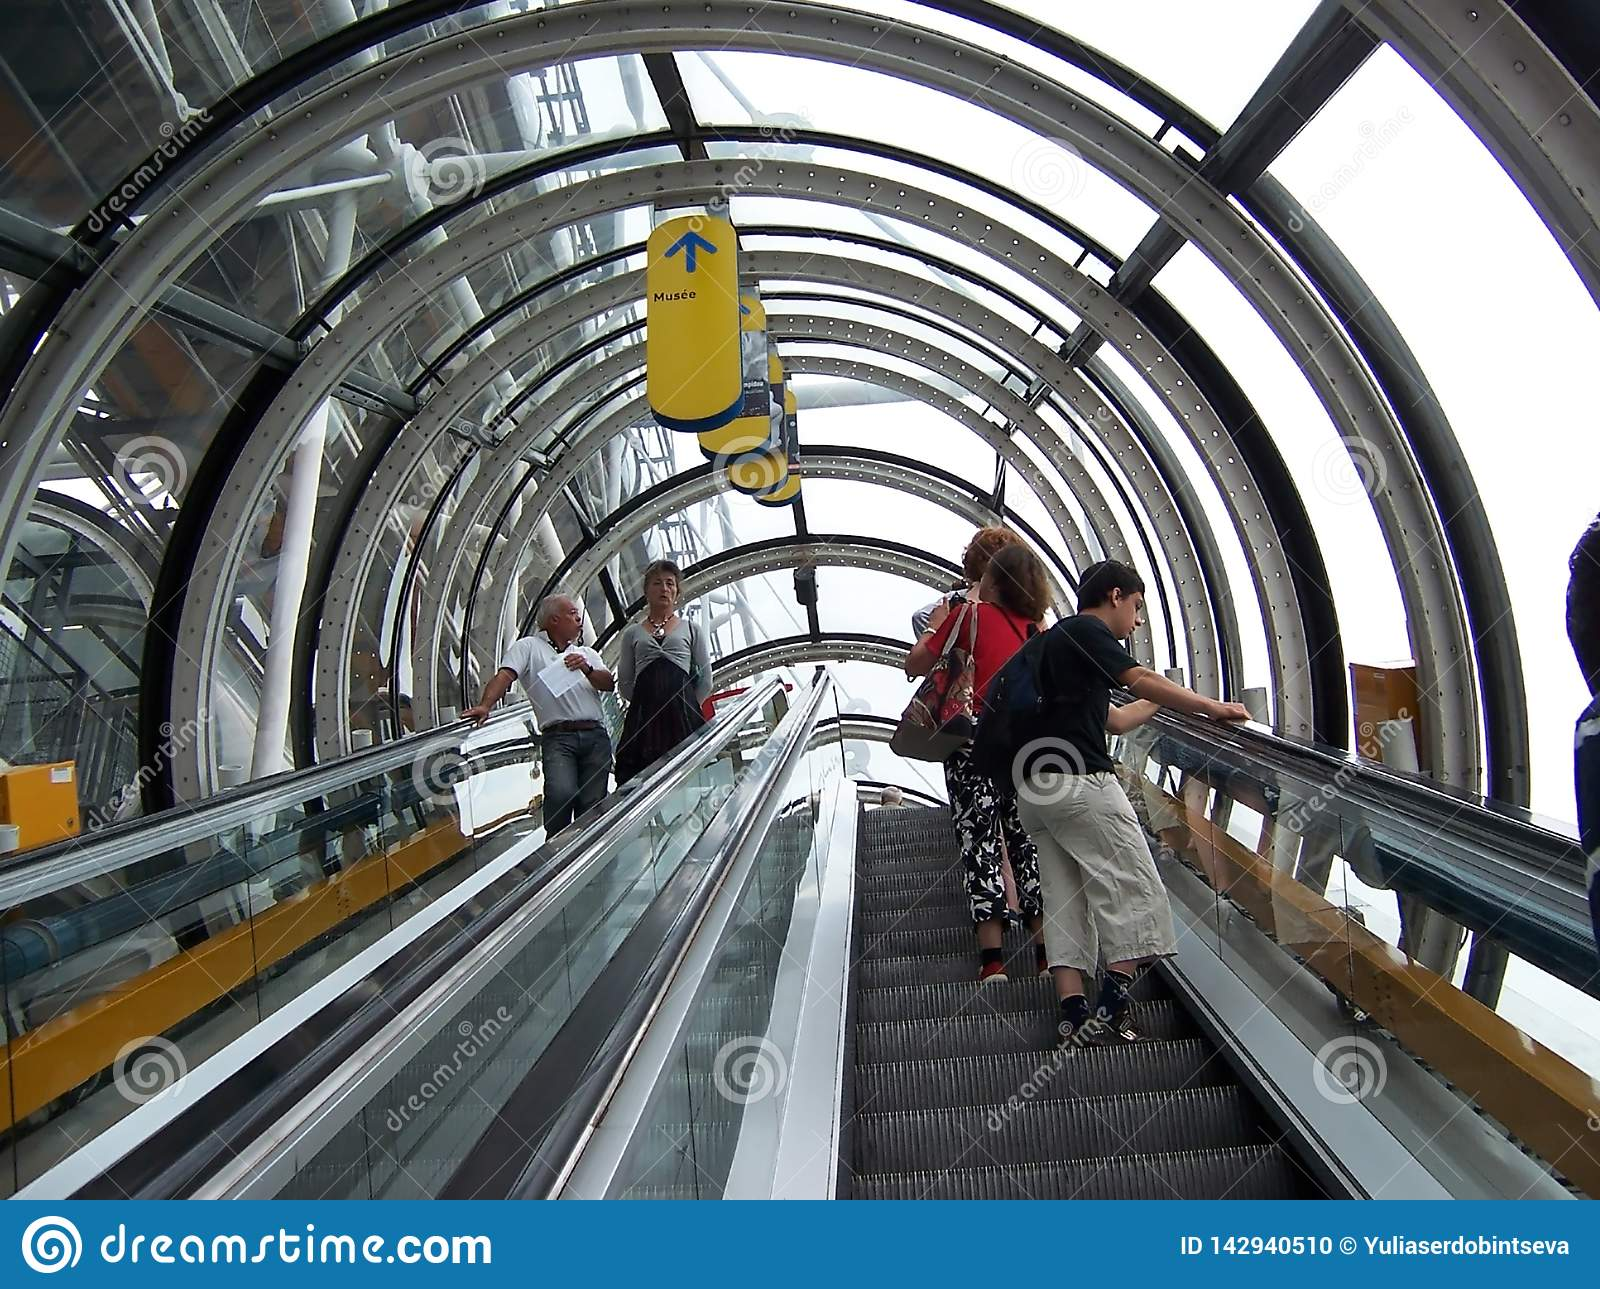 Paris, France-August 07, 2009: People go on the escalator at the Pompidou Museum